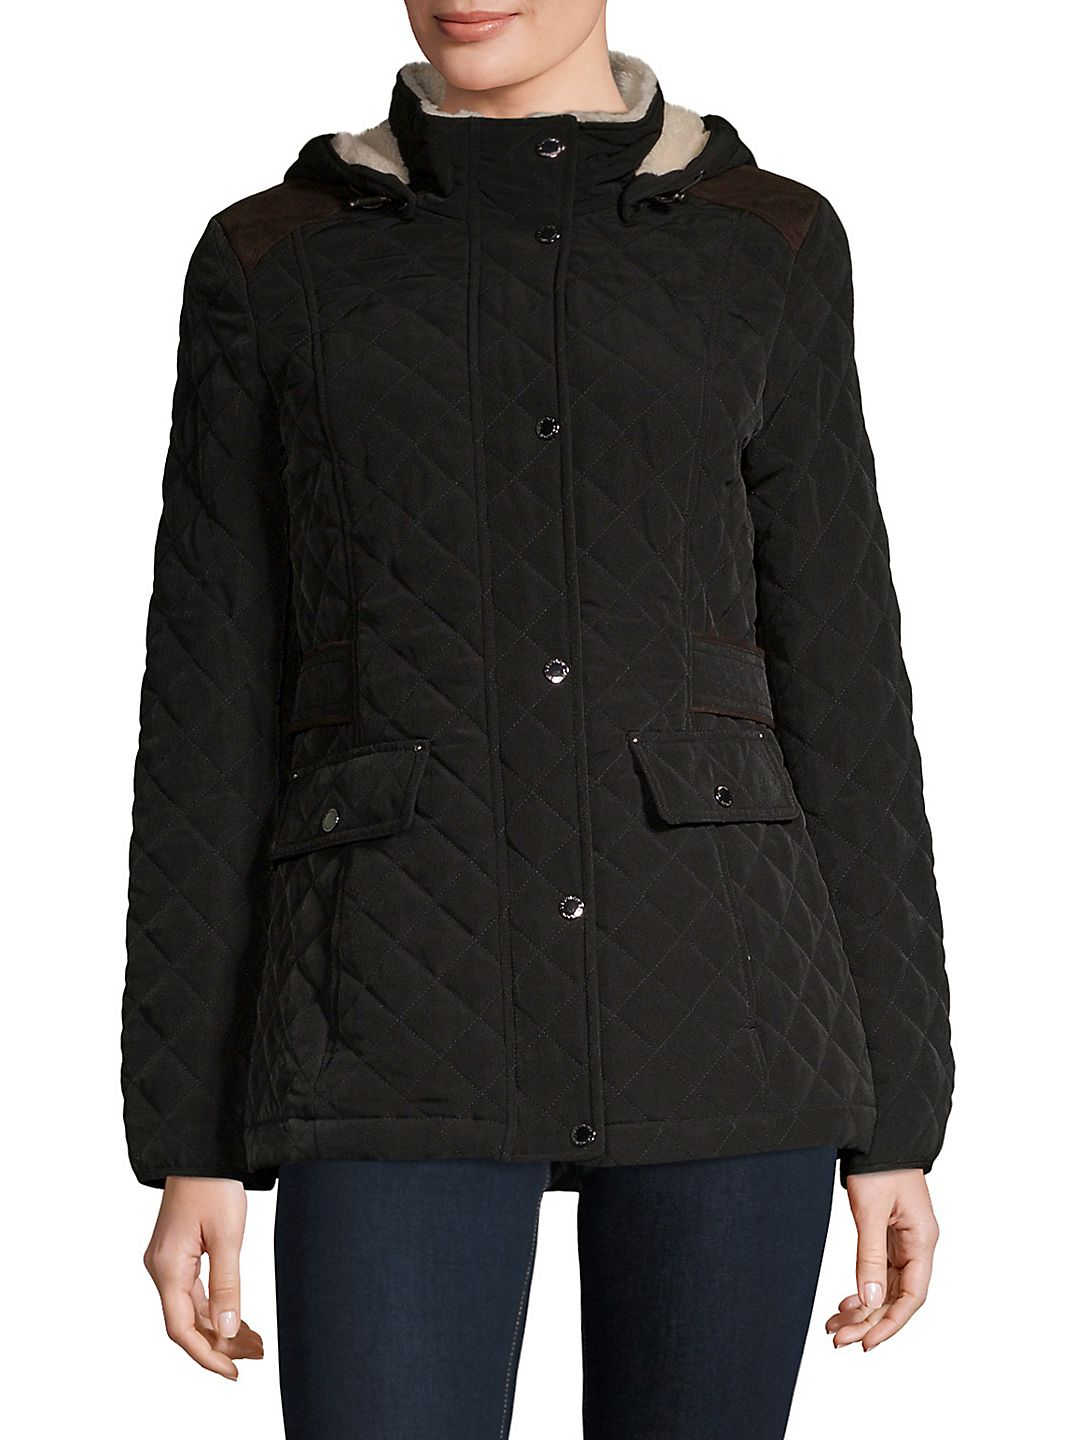 03183d129822 Walmart/Lord & Taylor: Laundry by Shelli Segal Jackets – only $58 ...